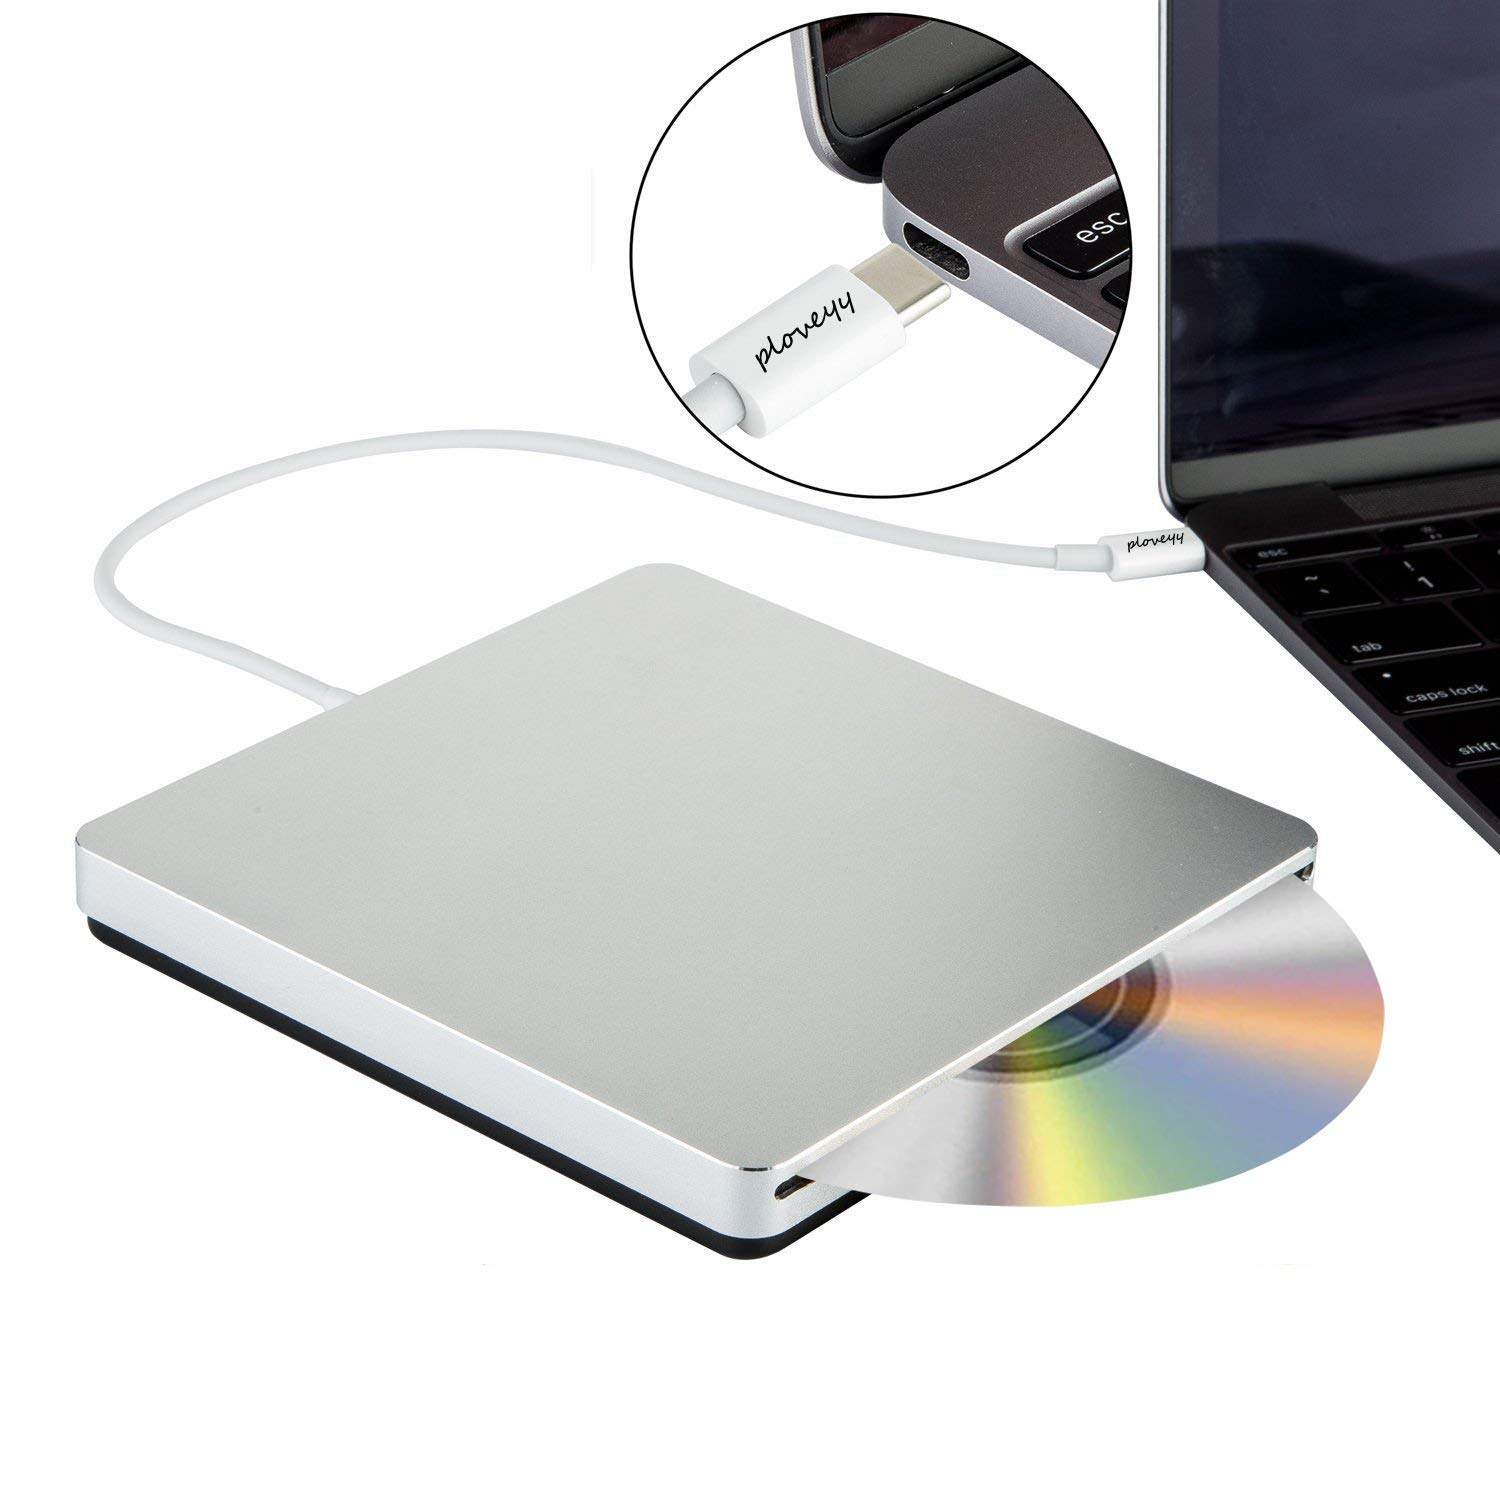 Ploveyy USB-C Superdrive External DVD/CD Reader and DVD/CD Burner for MacBook Air/Pro/iMac/Mini/MacBook Pro/ASUS/DELL Latitude with USB-C Port Plug and Play - Silver, Premium Series by Ploveyy (Image #5)